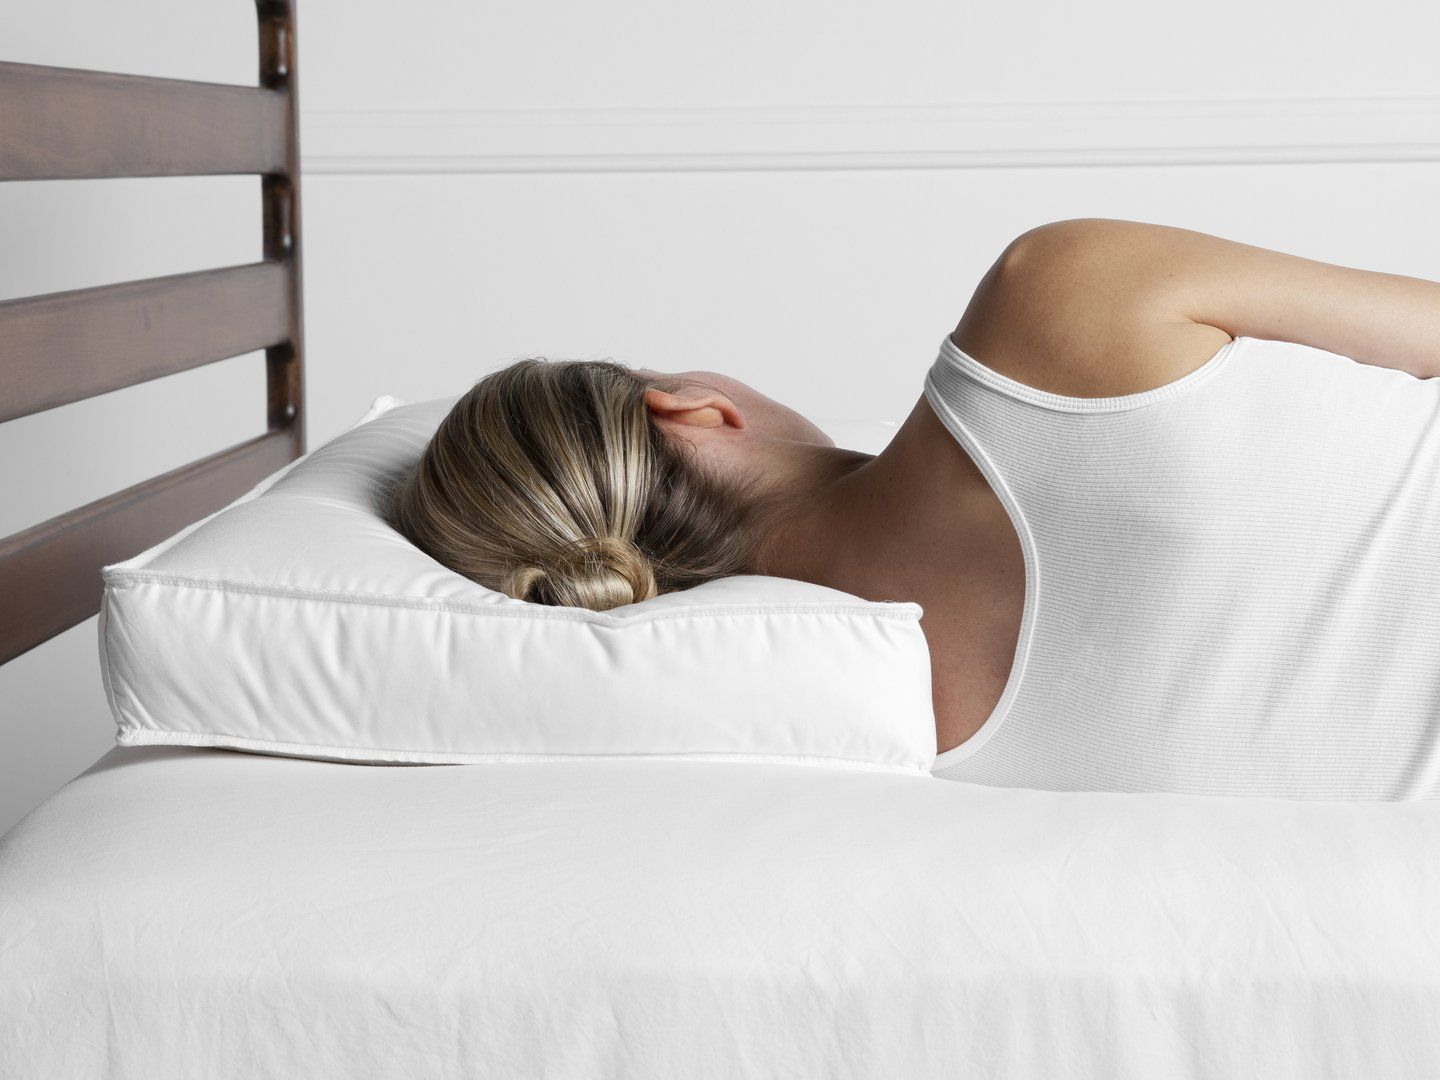 I Tried Parachute's New Side Sleeper Pillow, and I'm Obsessed